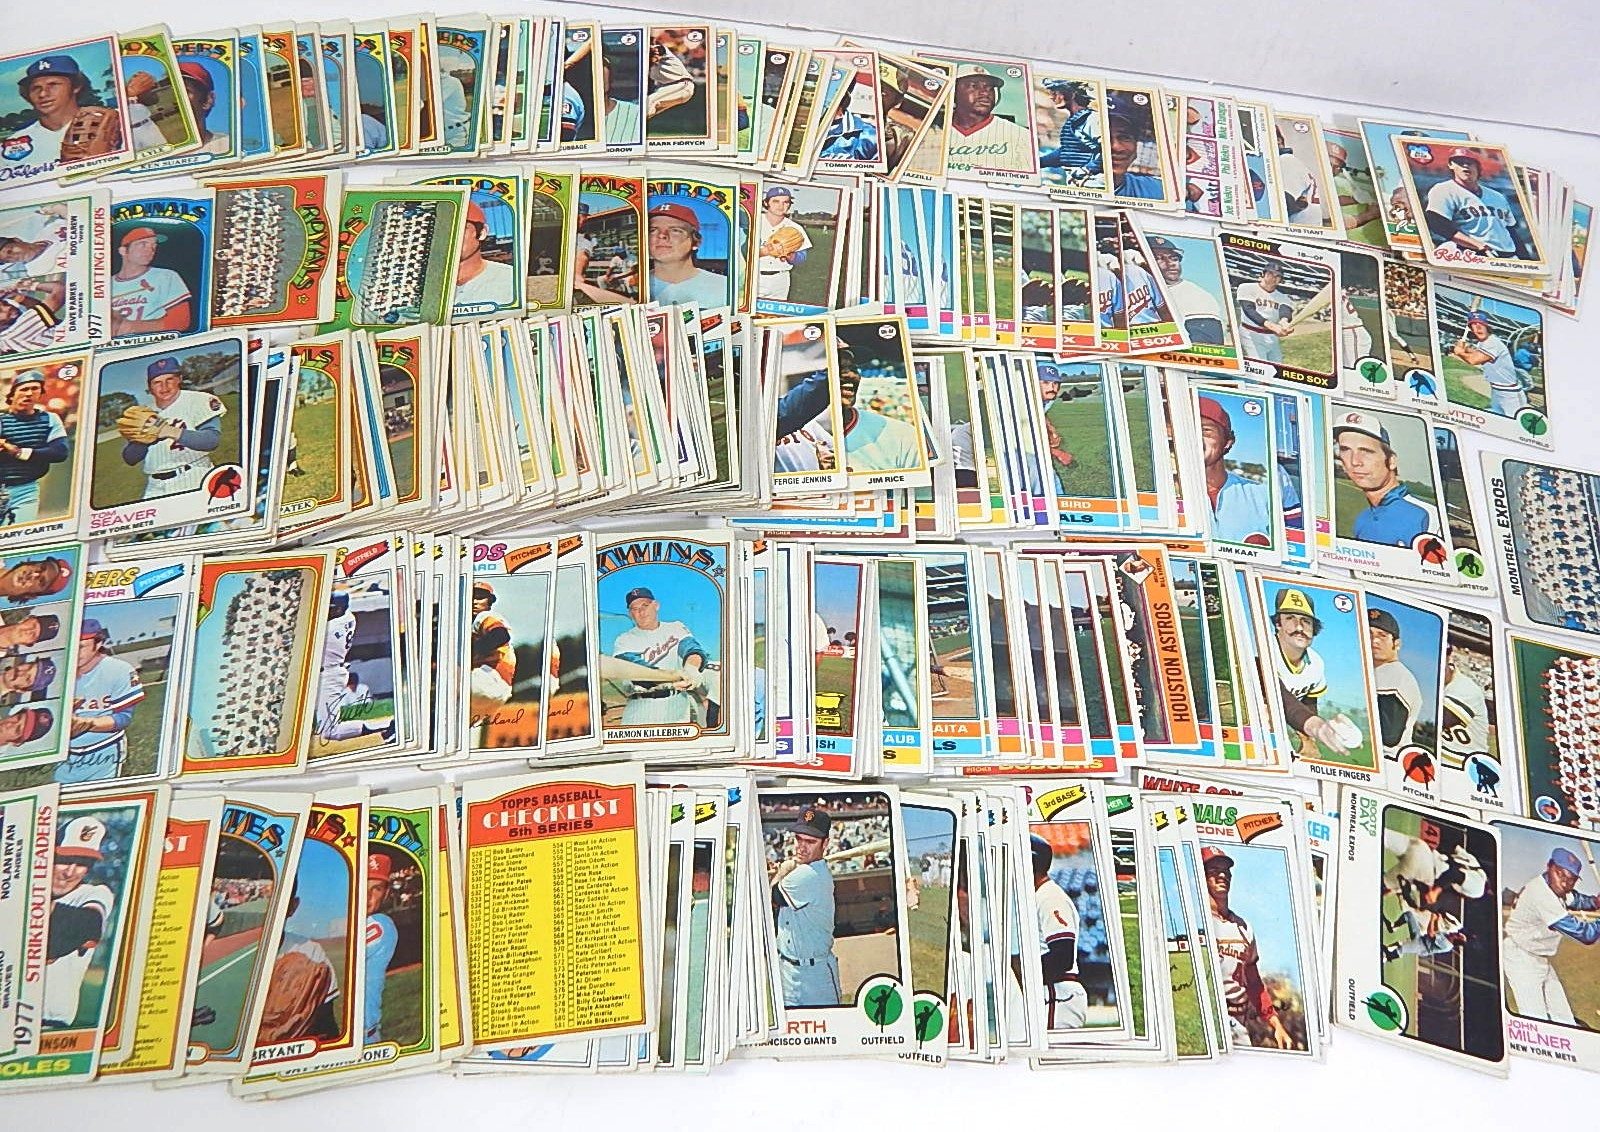 1972 to 1978 Topps Baseball Card Lot - Over 300 Card Count with Ryan, Killebrew